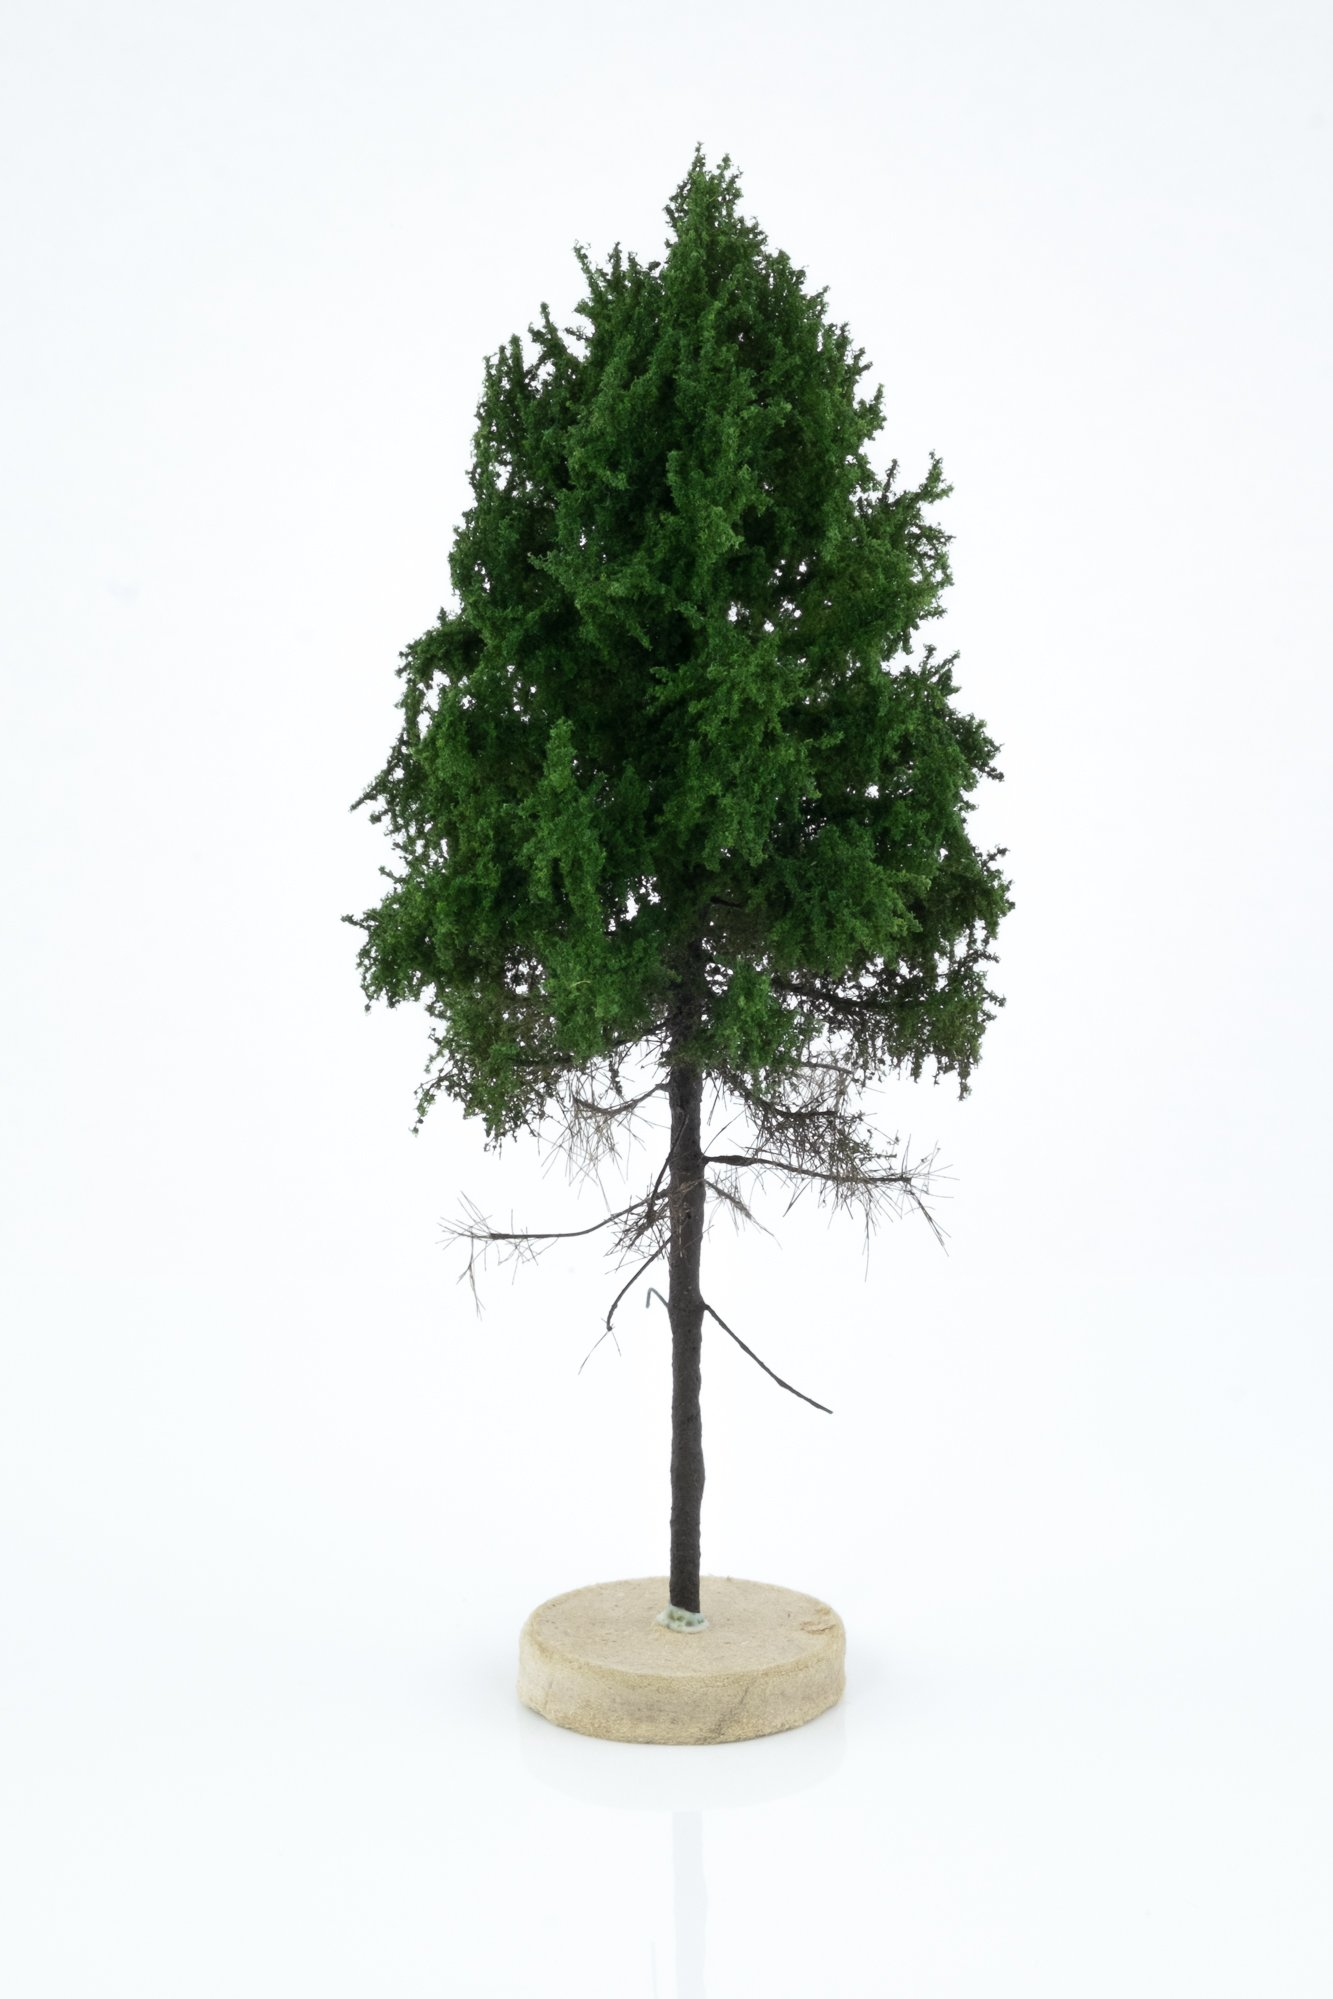 Hand-made, green, forest larch tree model. Size between 14 and 16 cm. Made from high quality model supplies by Primo Models.